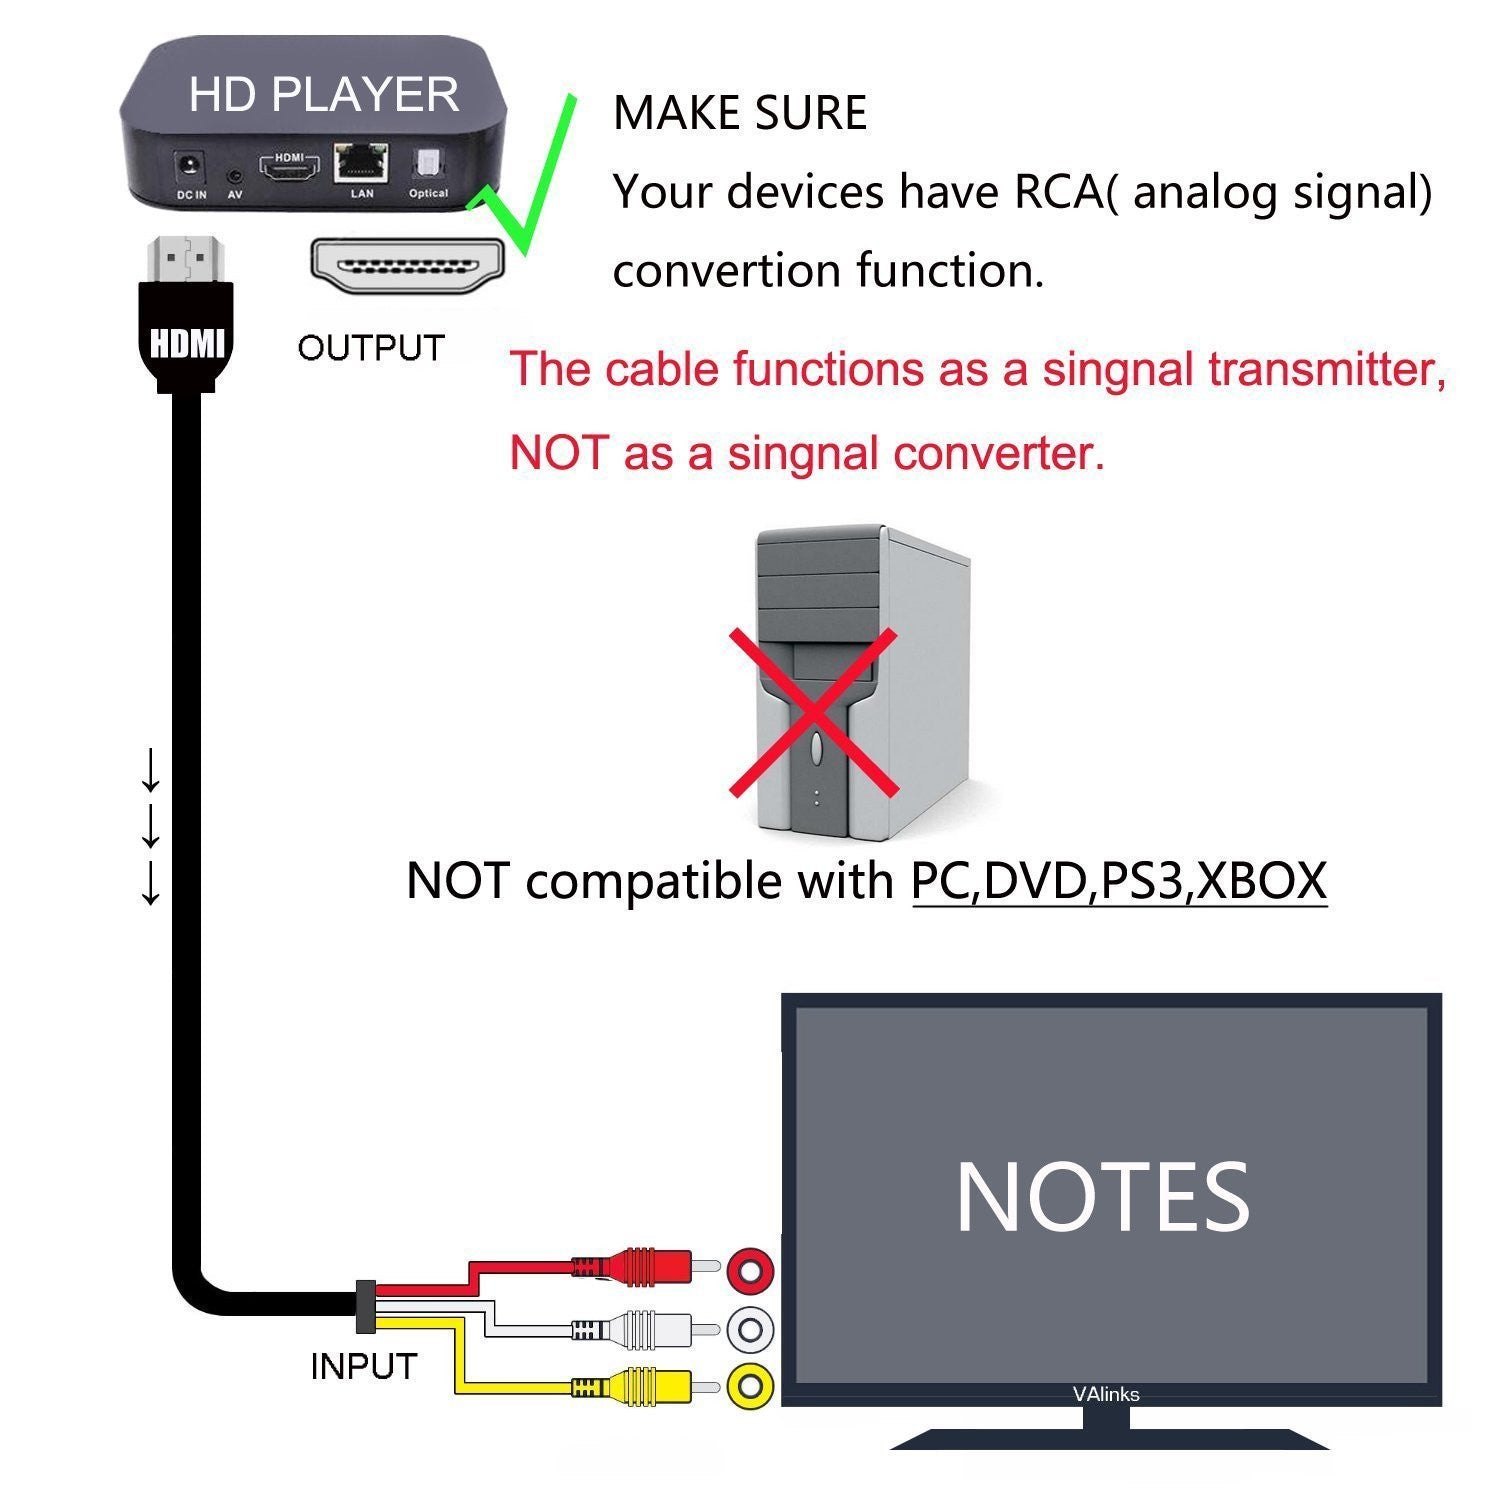 rca_to_hdmi2?v=1478781133 hdmi to rca cable audio video jack lot more deals rca cable diagram at panicattacktreatment.co